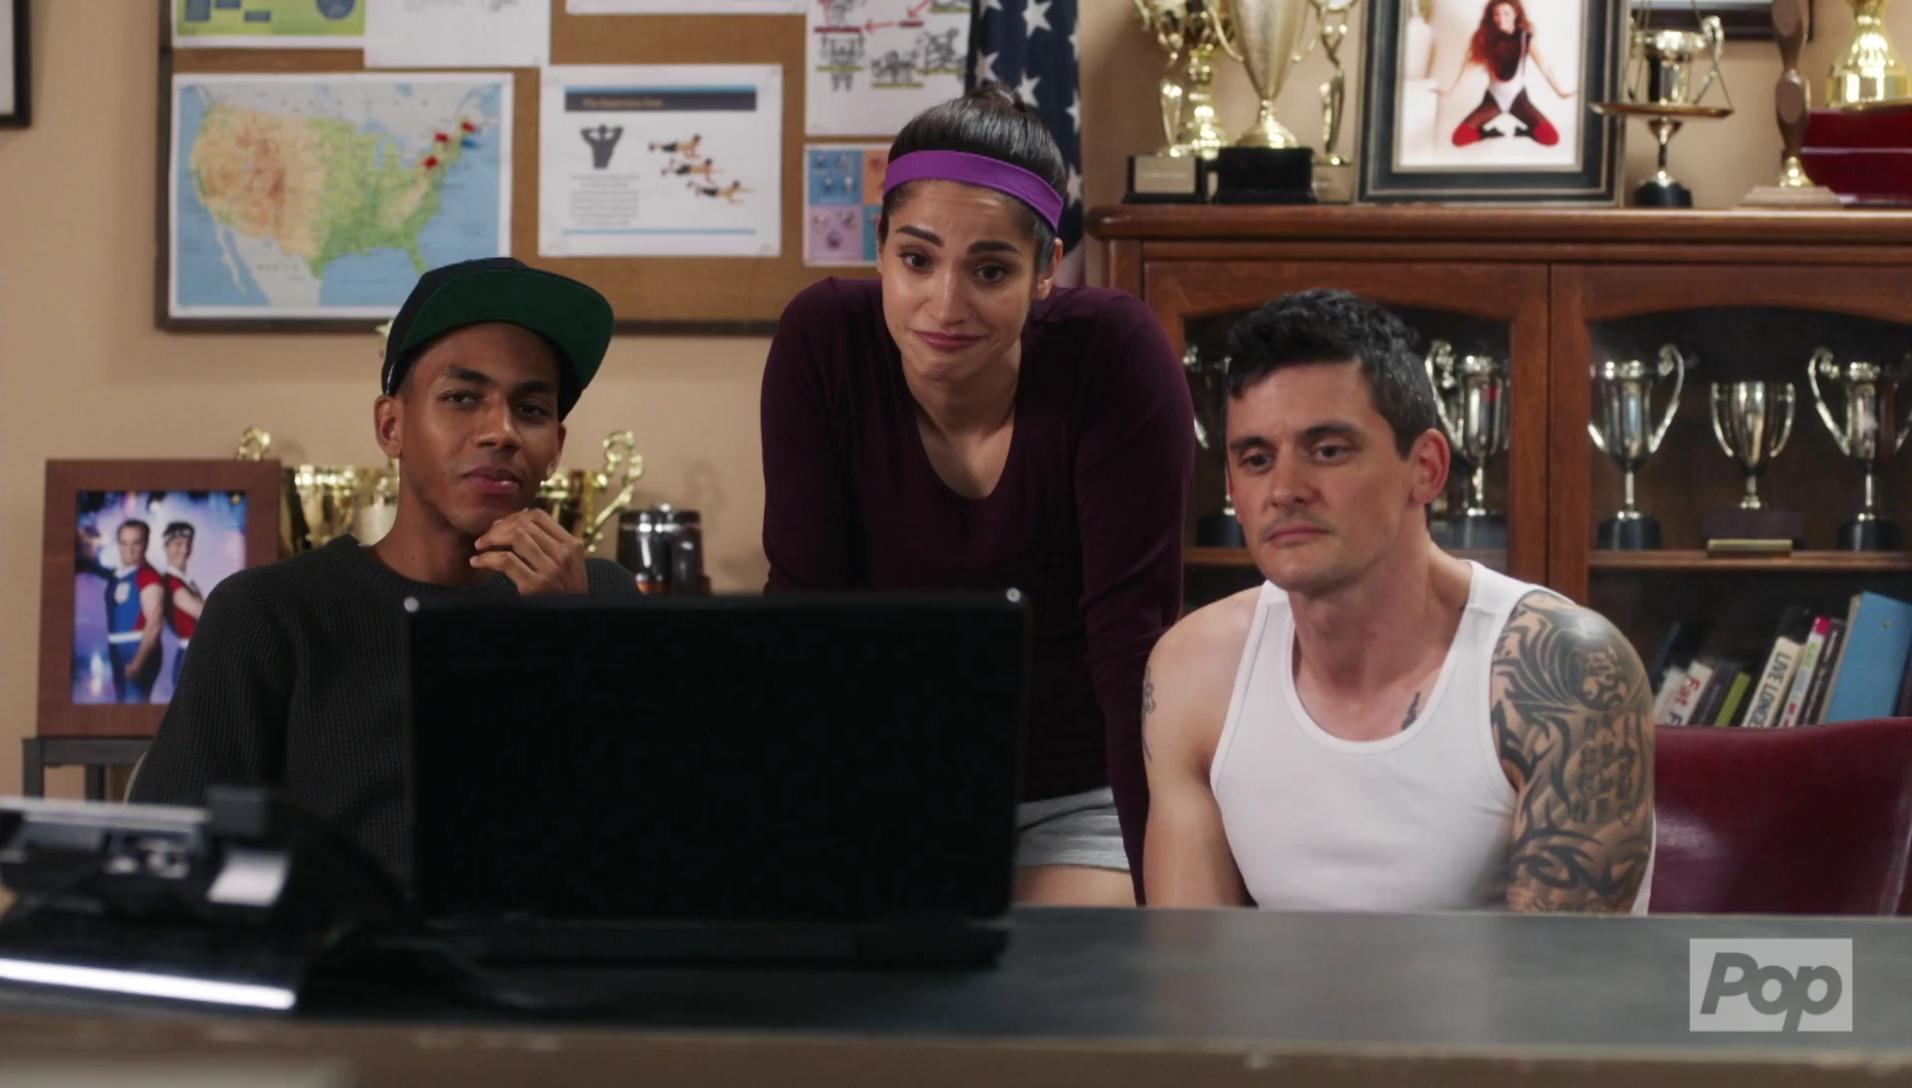 James Cade, Misha Rasaiah, and Jahmil French in Let's Get Physical (2018)